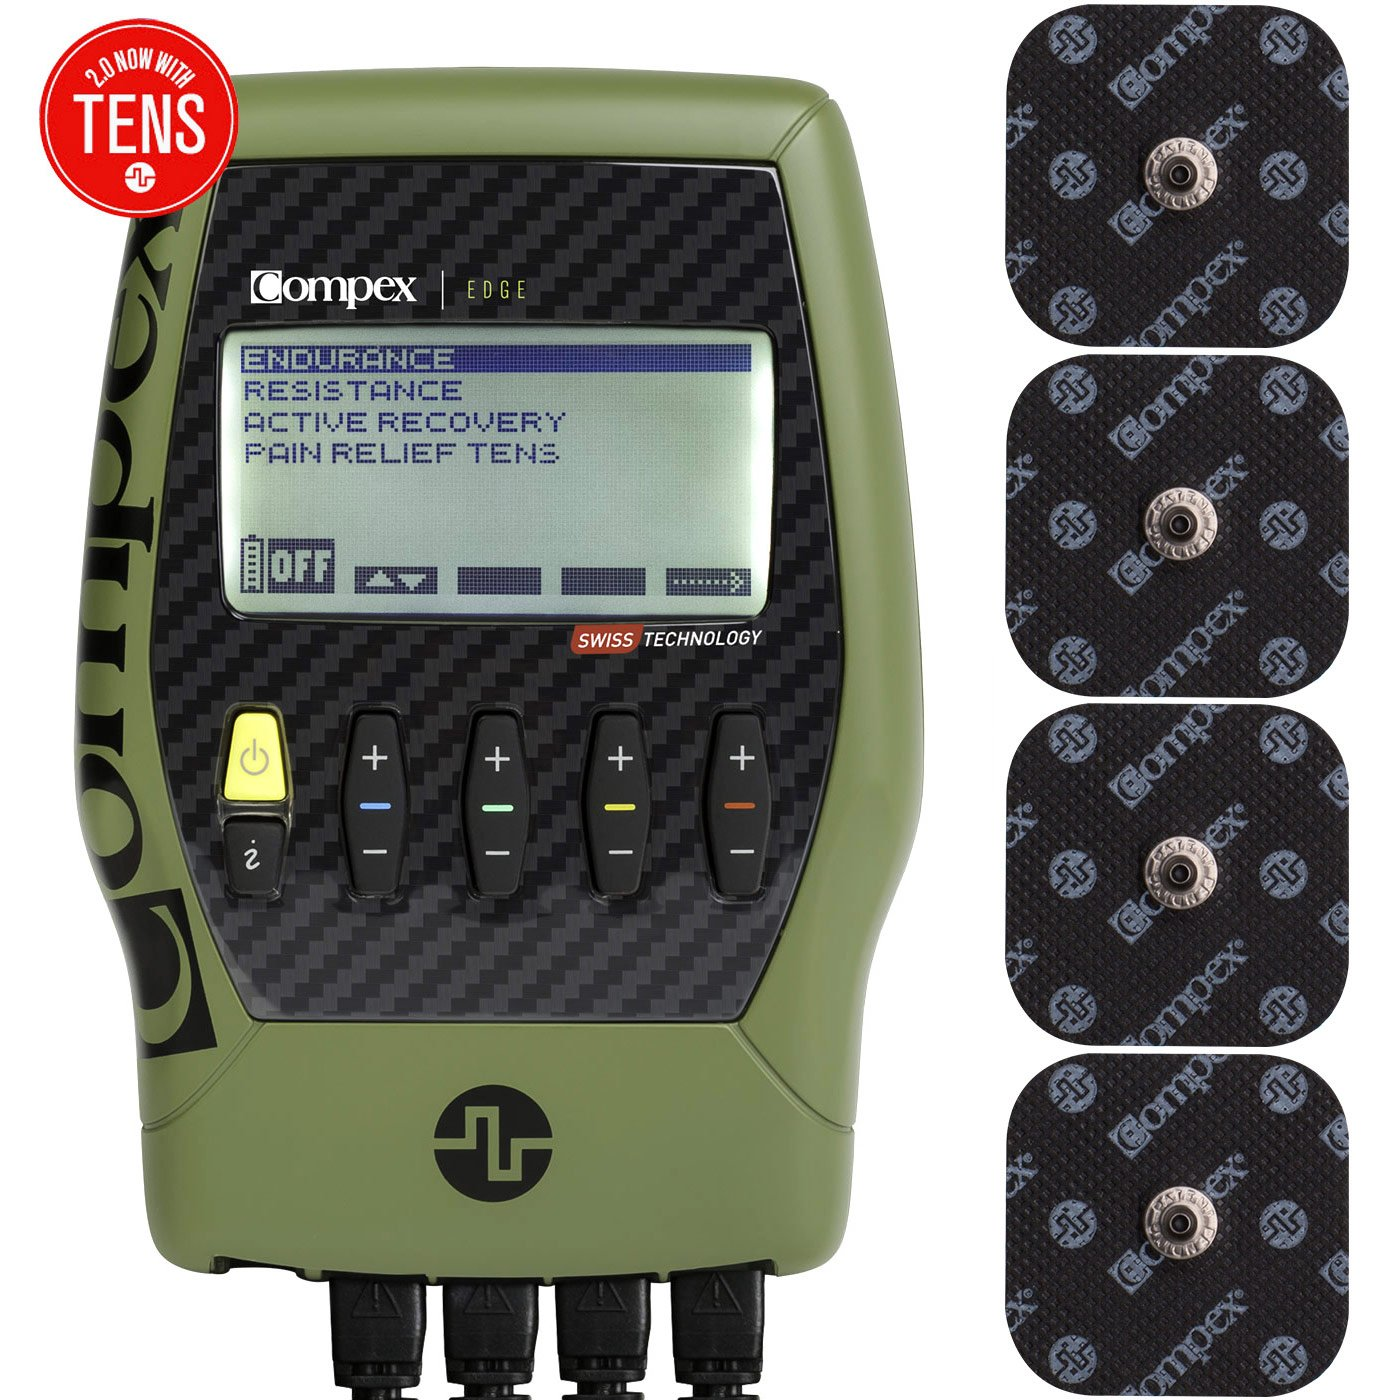 Compex Edge 2.0 Muscle Stimulator with TENS Bundle Kit: Muscle Stim, 12 Snap Electrodes, 4 Programs, Lead Wires, Battery, Case / 2 strength, 1 recovery, 1 TENS